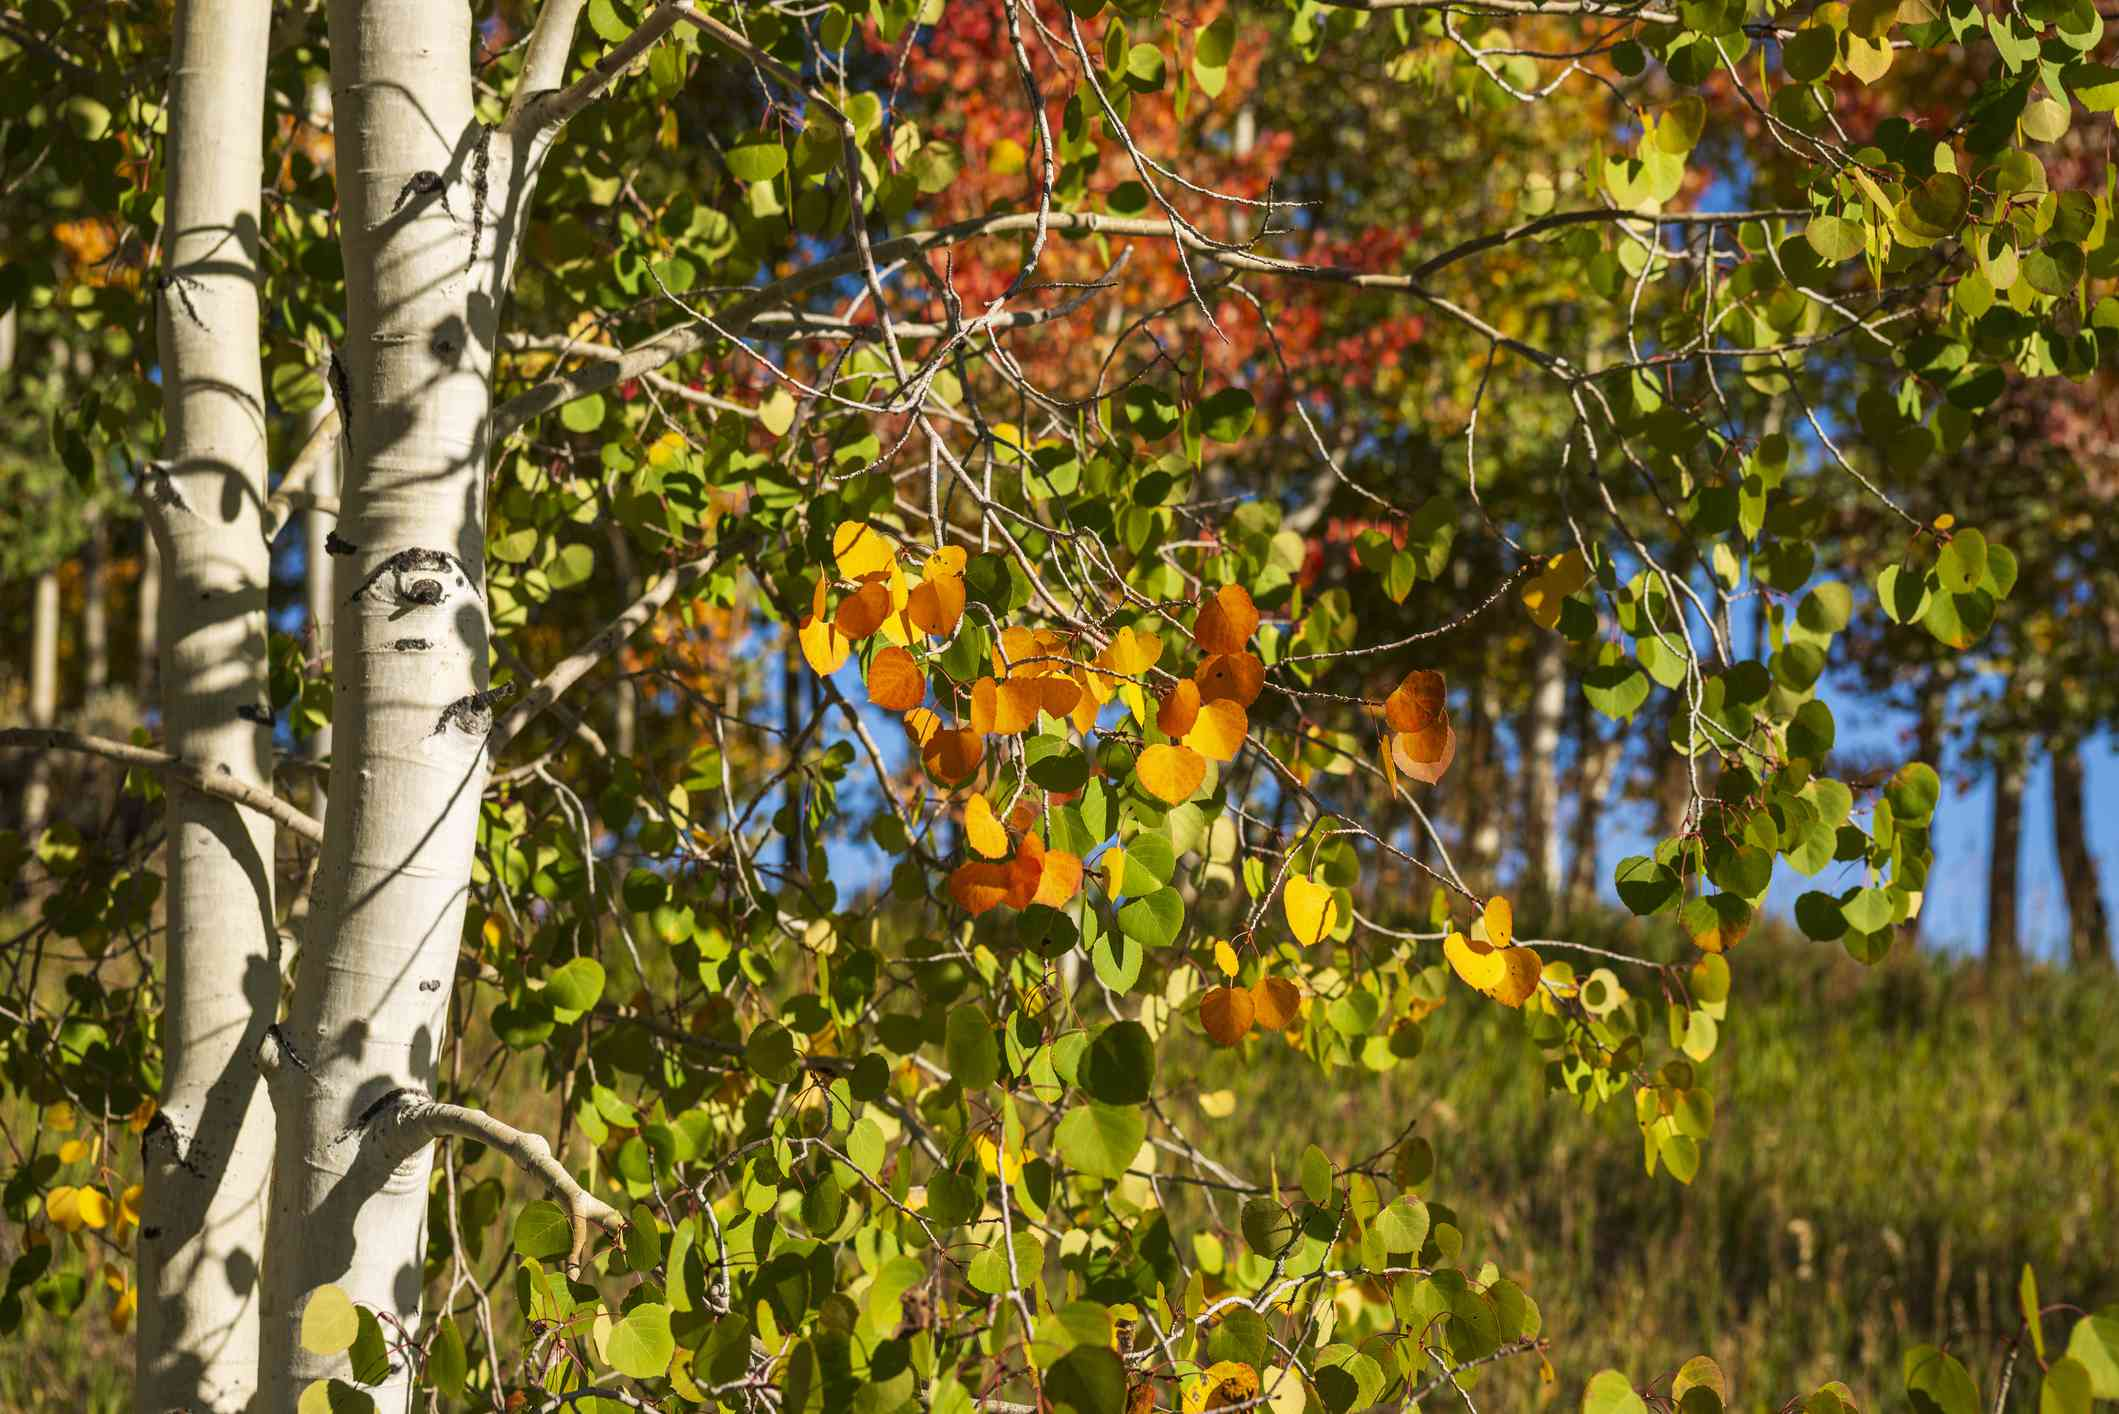 Leaves starting to change on Quaking Aspen trees in Colorado.